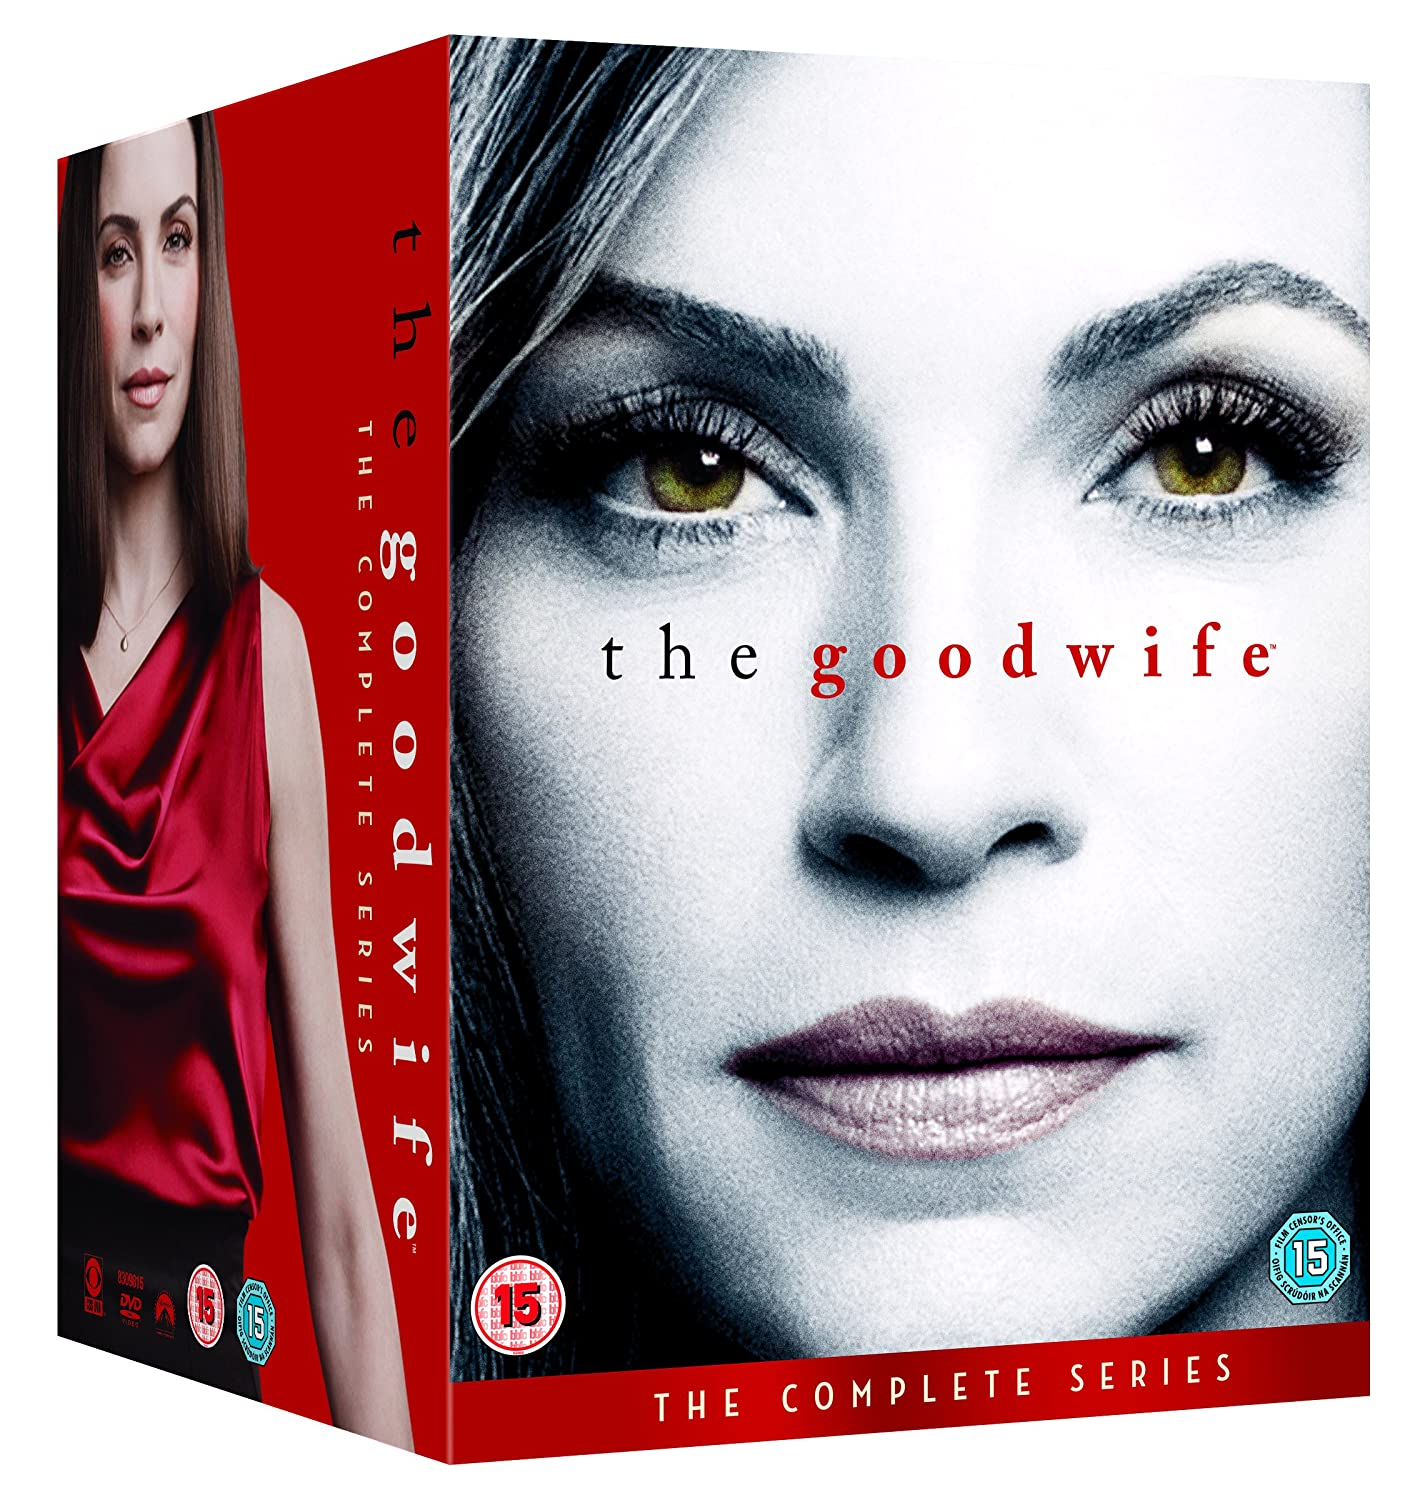 The Good Wife: The Complete Series [DVD]: Amazon.co.uk: Julianna ...